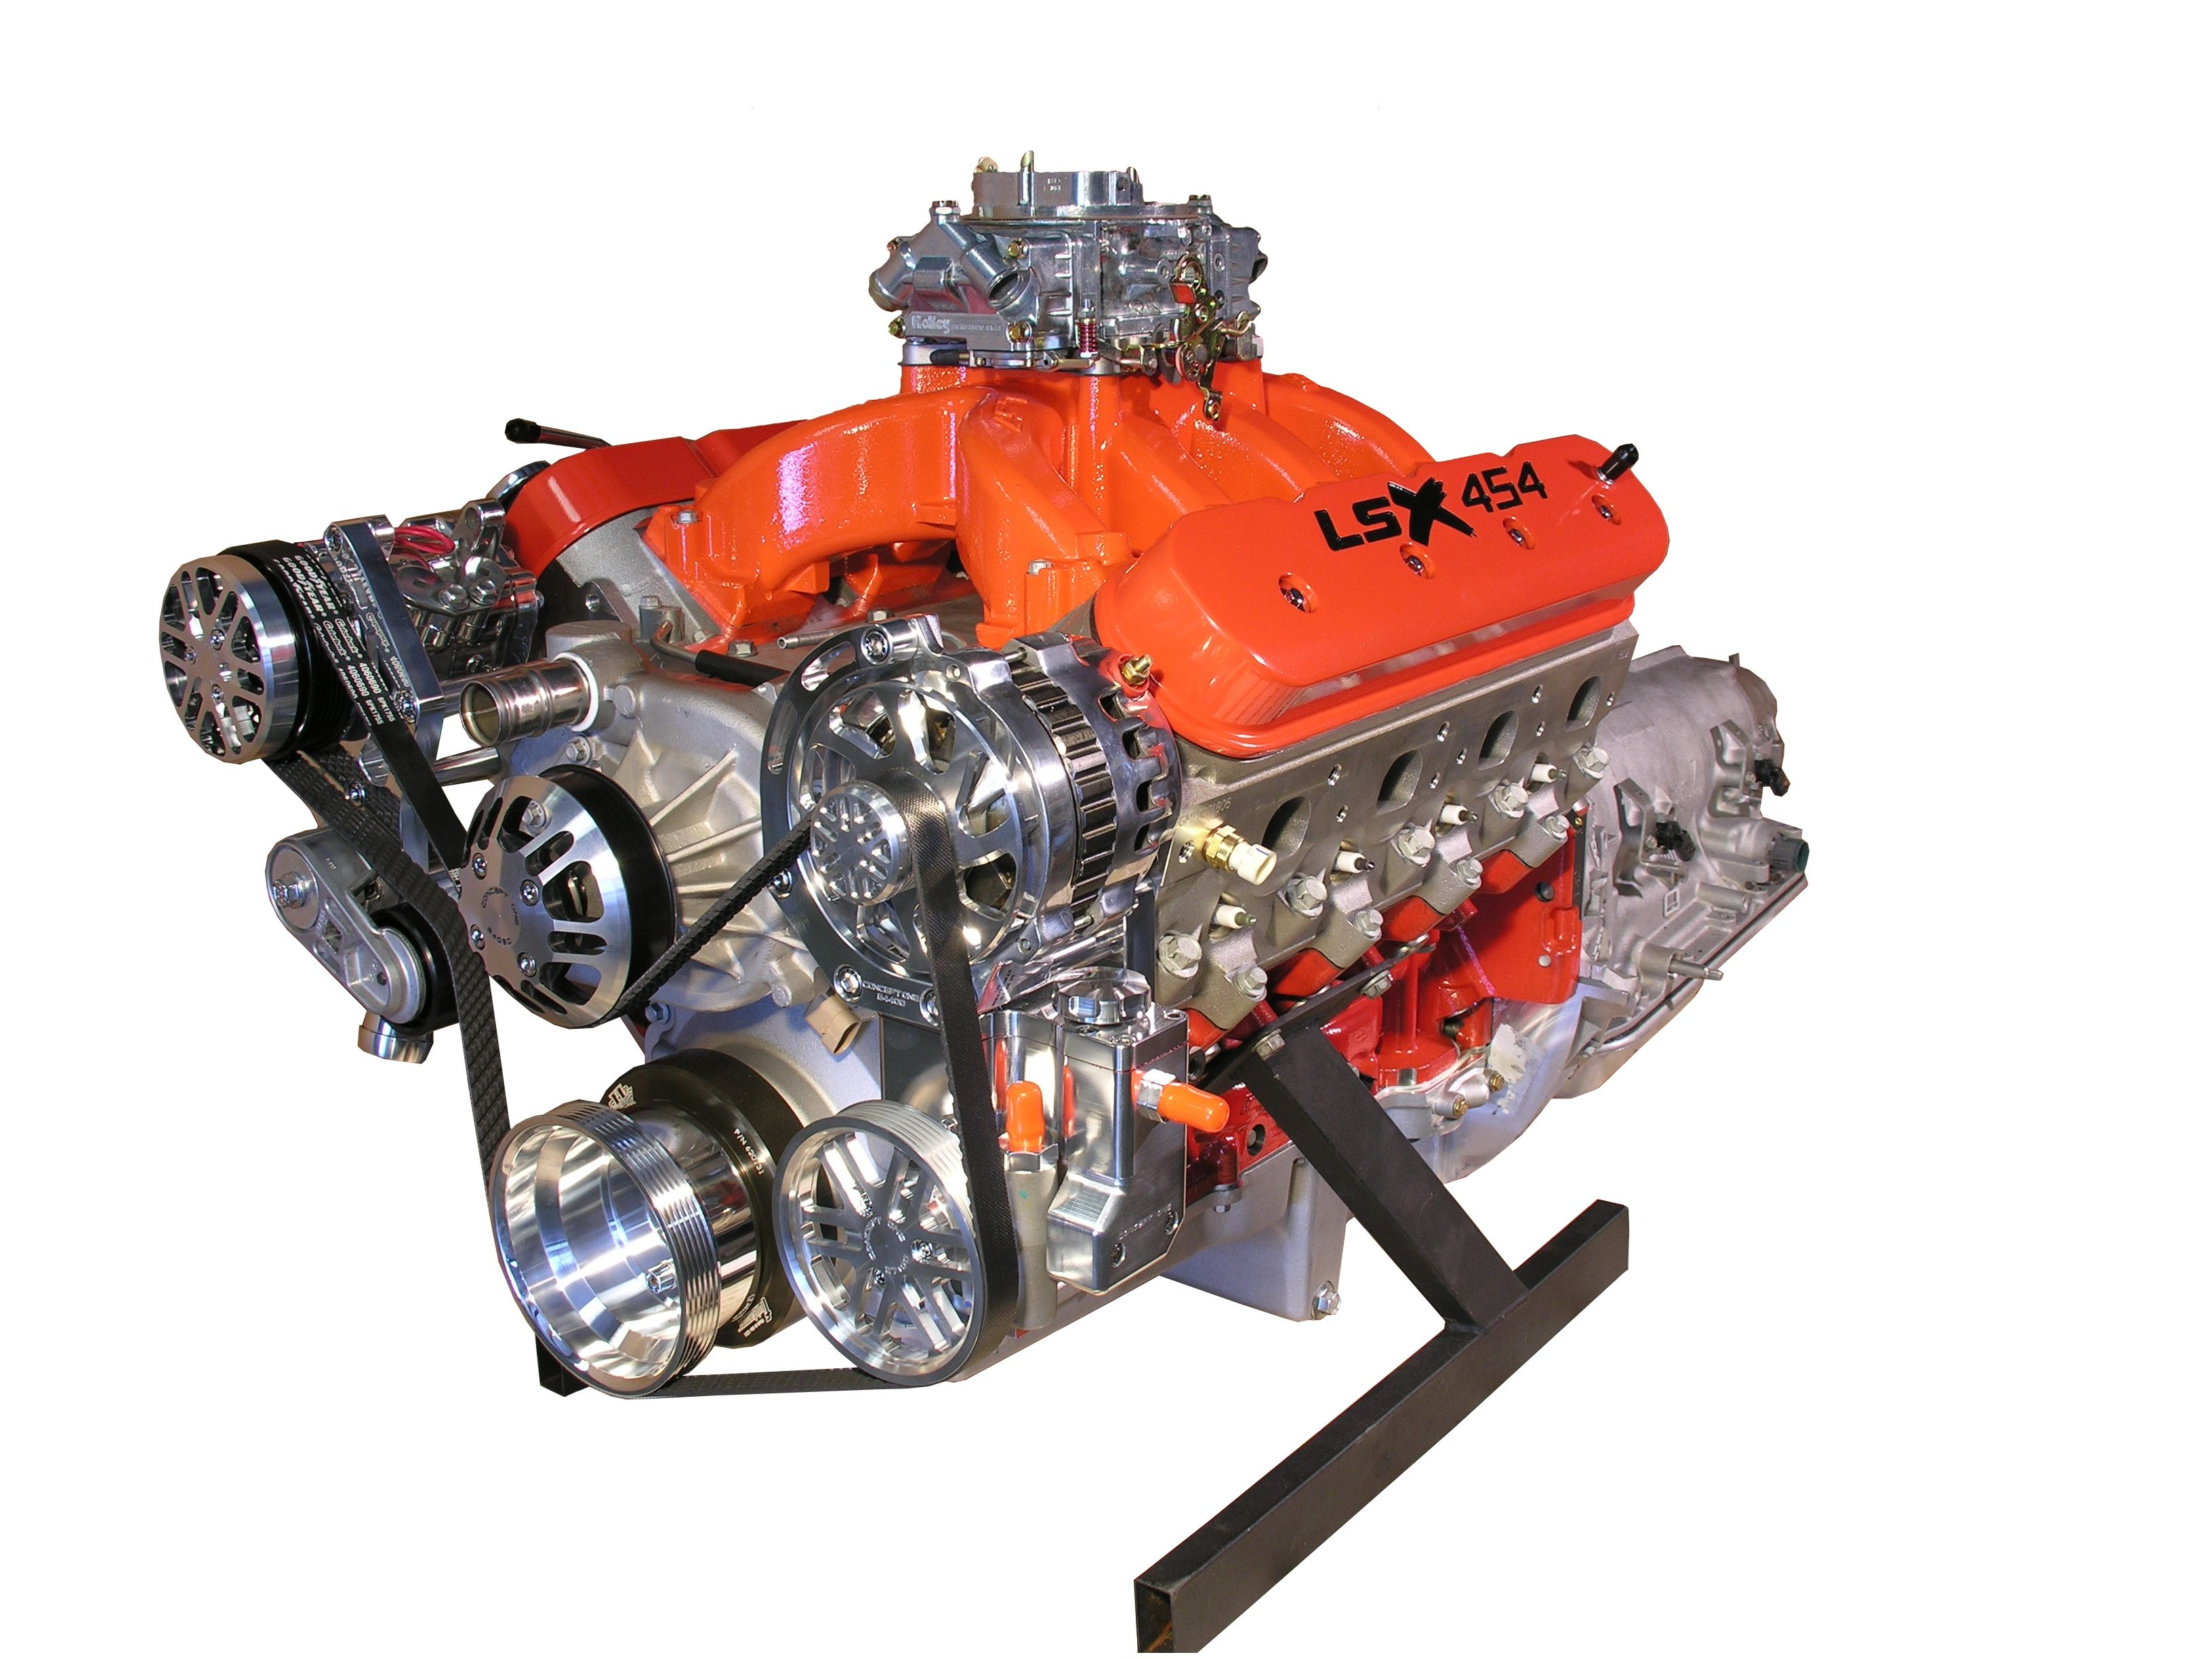 Lsx 454 engine with holley carb and 4l85e transmission 650 hp lsx 454 engine with holley carb and 4l85e transmission 650 hp spsengines pooptronica Image collections